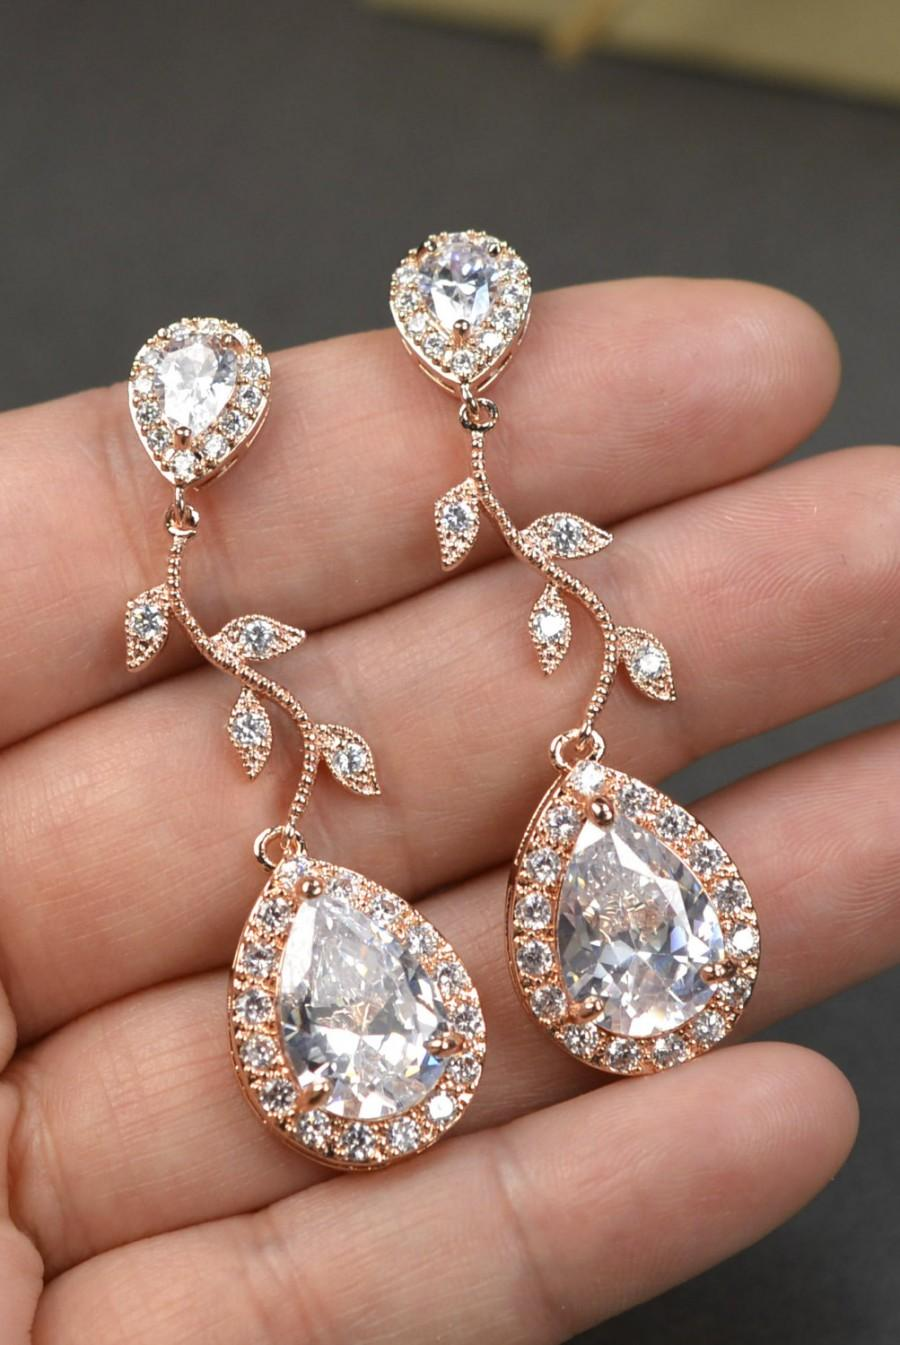 Rose gold crystal bridal earrings wedding jewelry set wedding rose gold crystal bridal earrings wedding jewelry set wedding bridal jewelry chandelier dangle drop earring bridal necklace bracelet arubaitofo Image collections